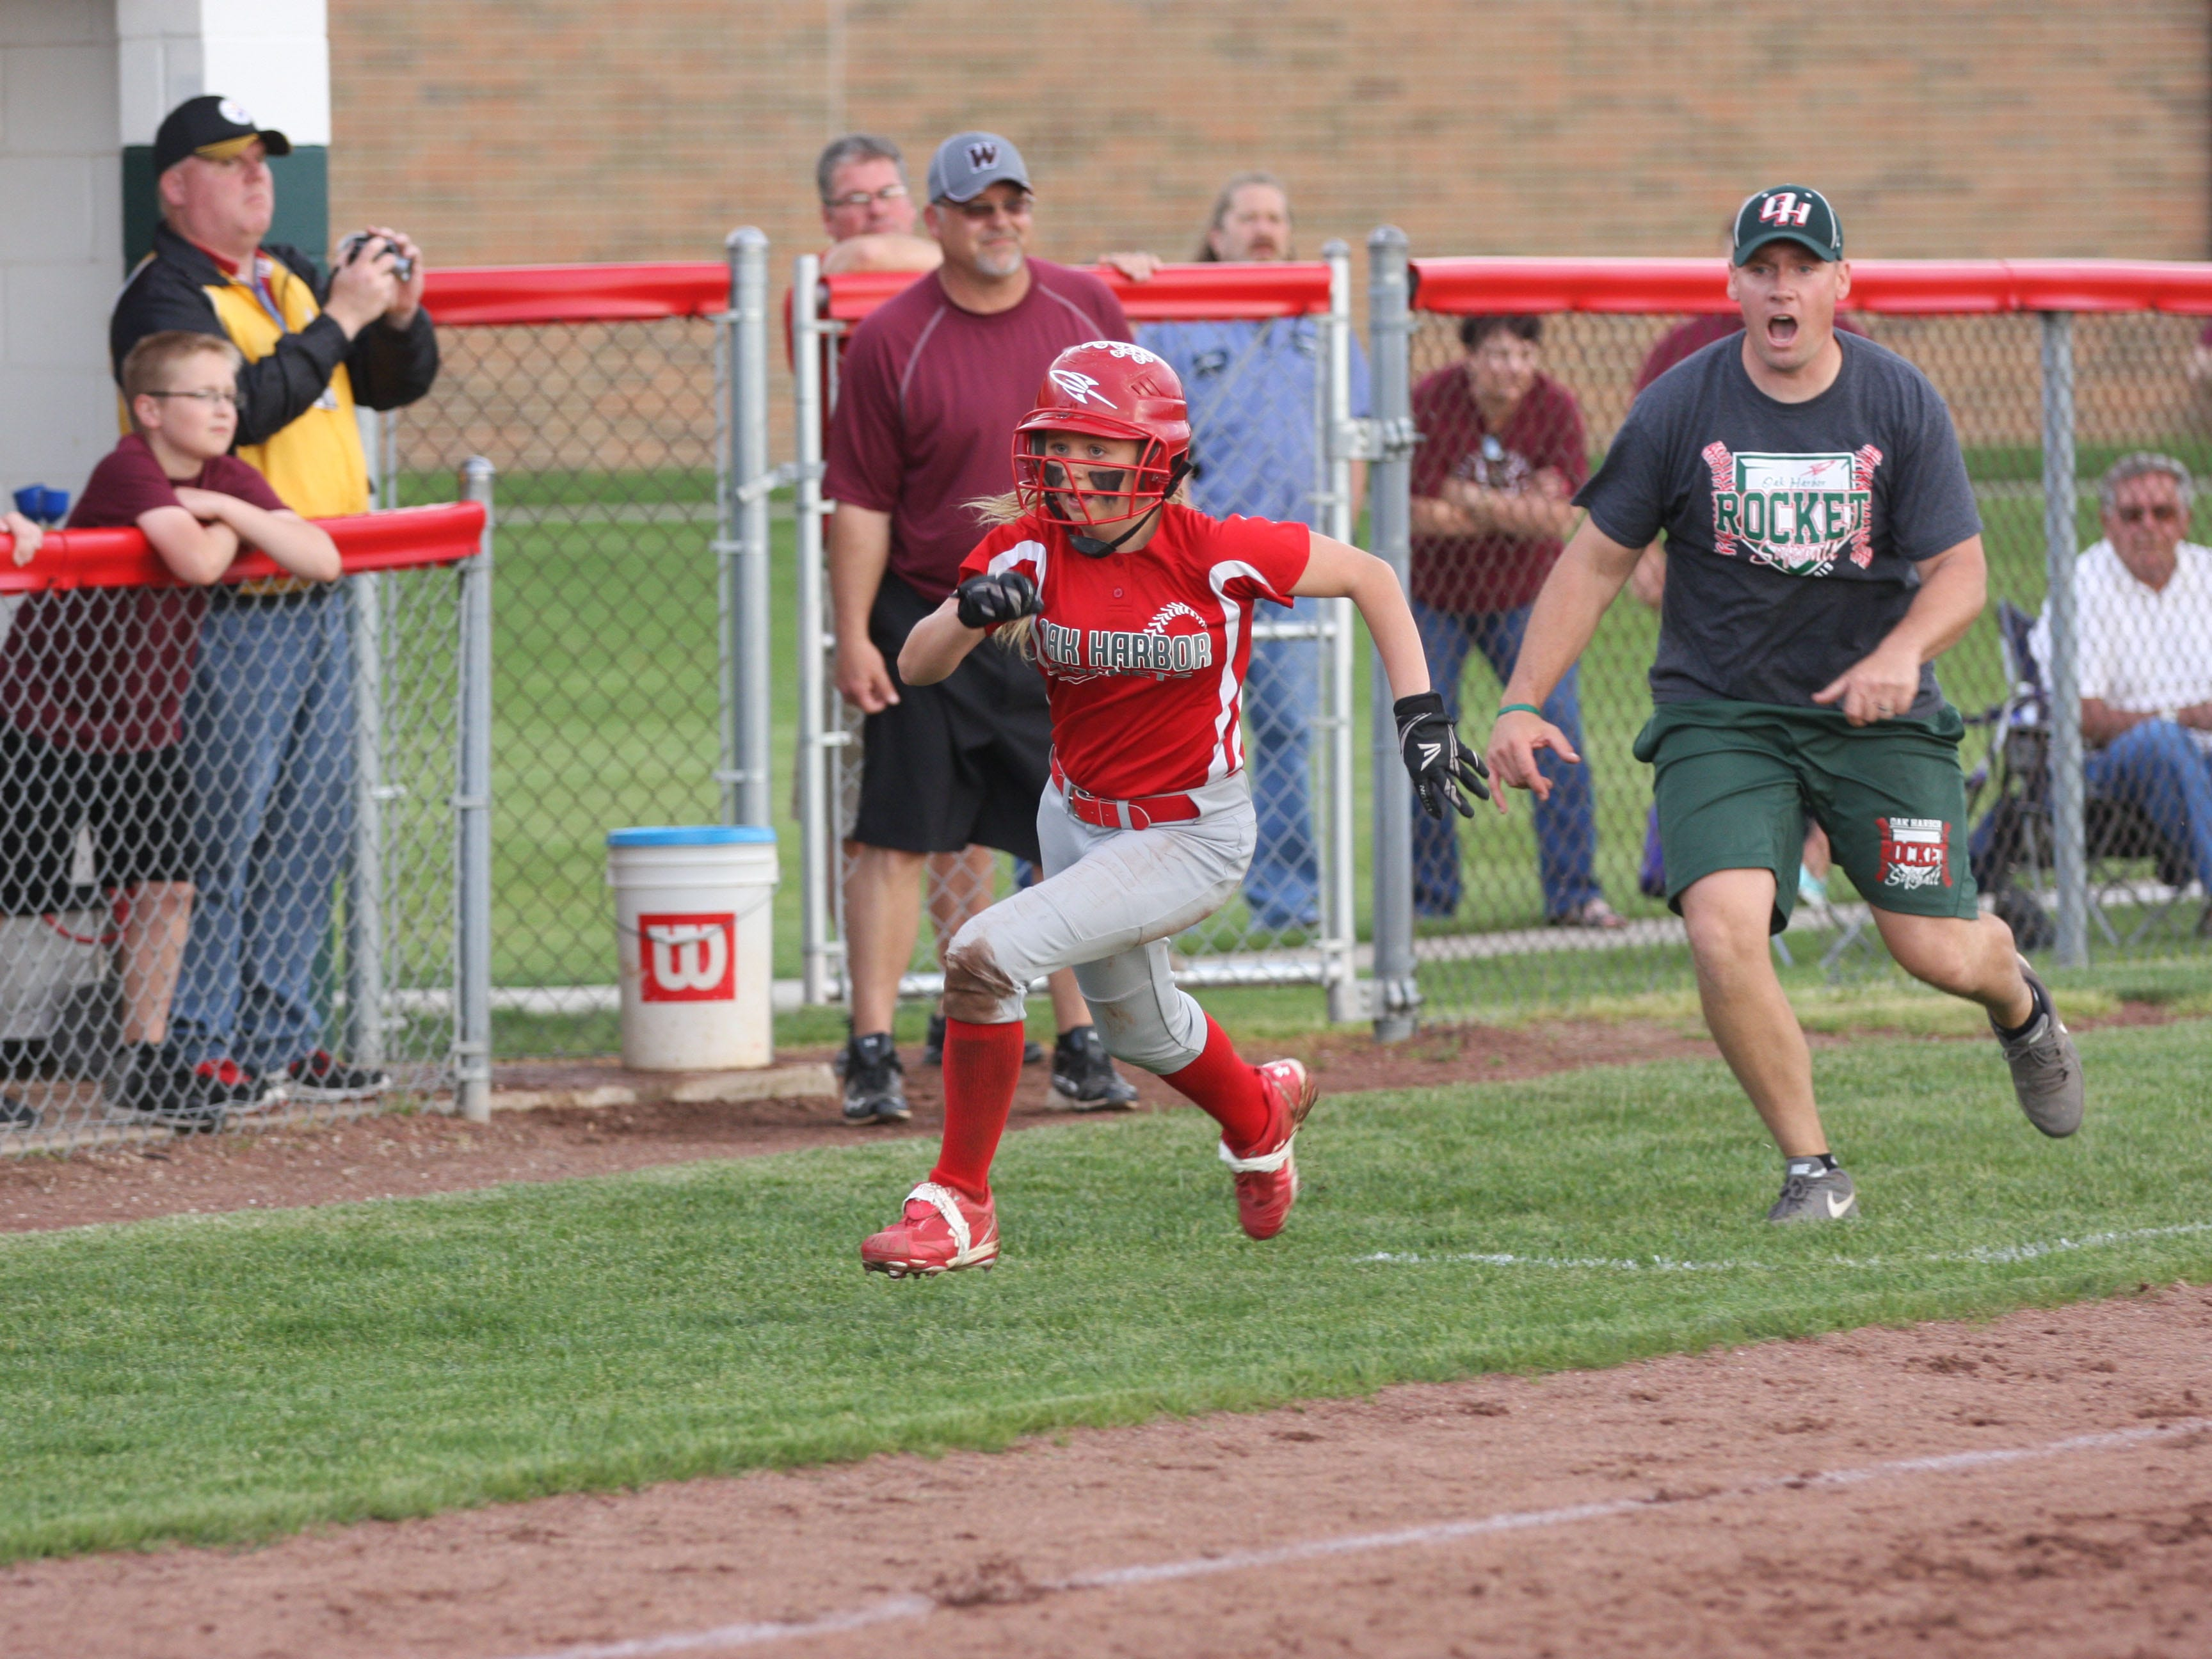 Coach Chris Rawski sends Seree Petersen home to score the game-tying run in the 11th inning Friday. The Rockets defeated Willard 2-1 in 12 innings in the sectional tournament at Oak Harbor.